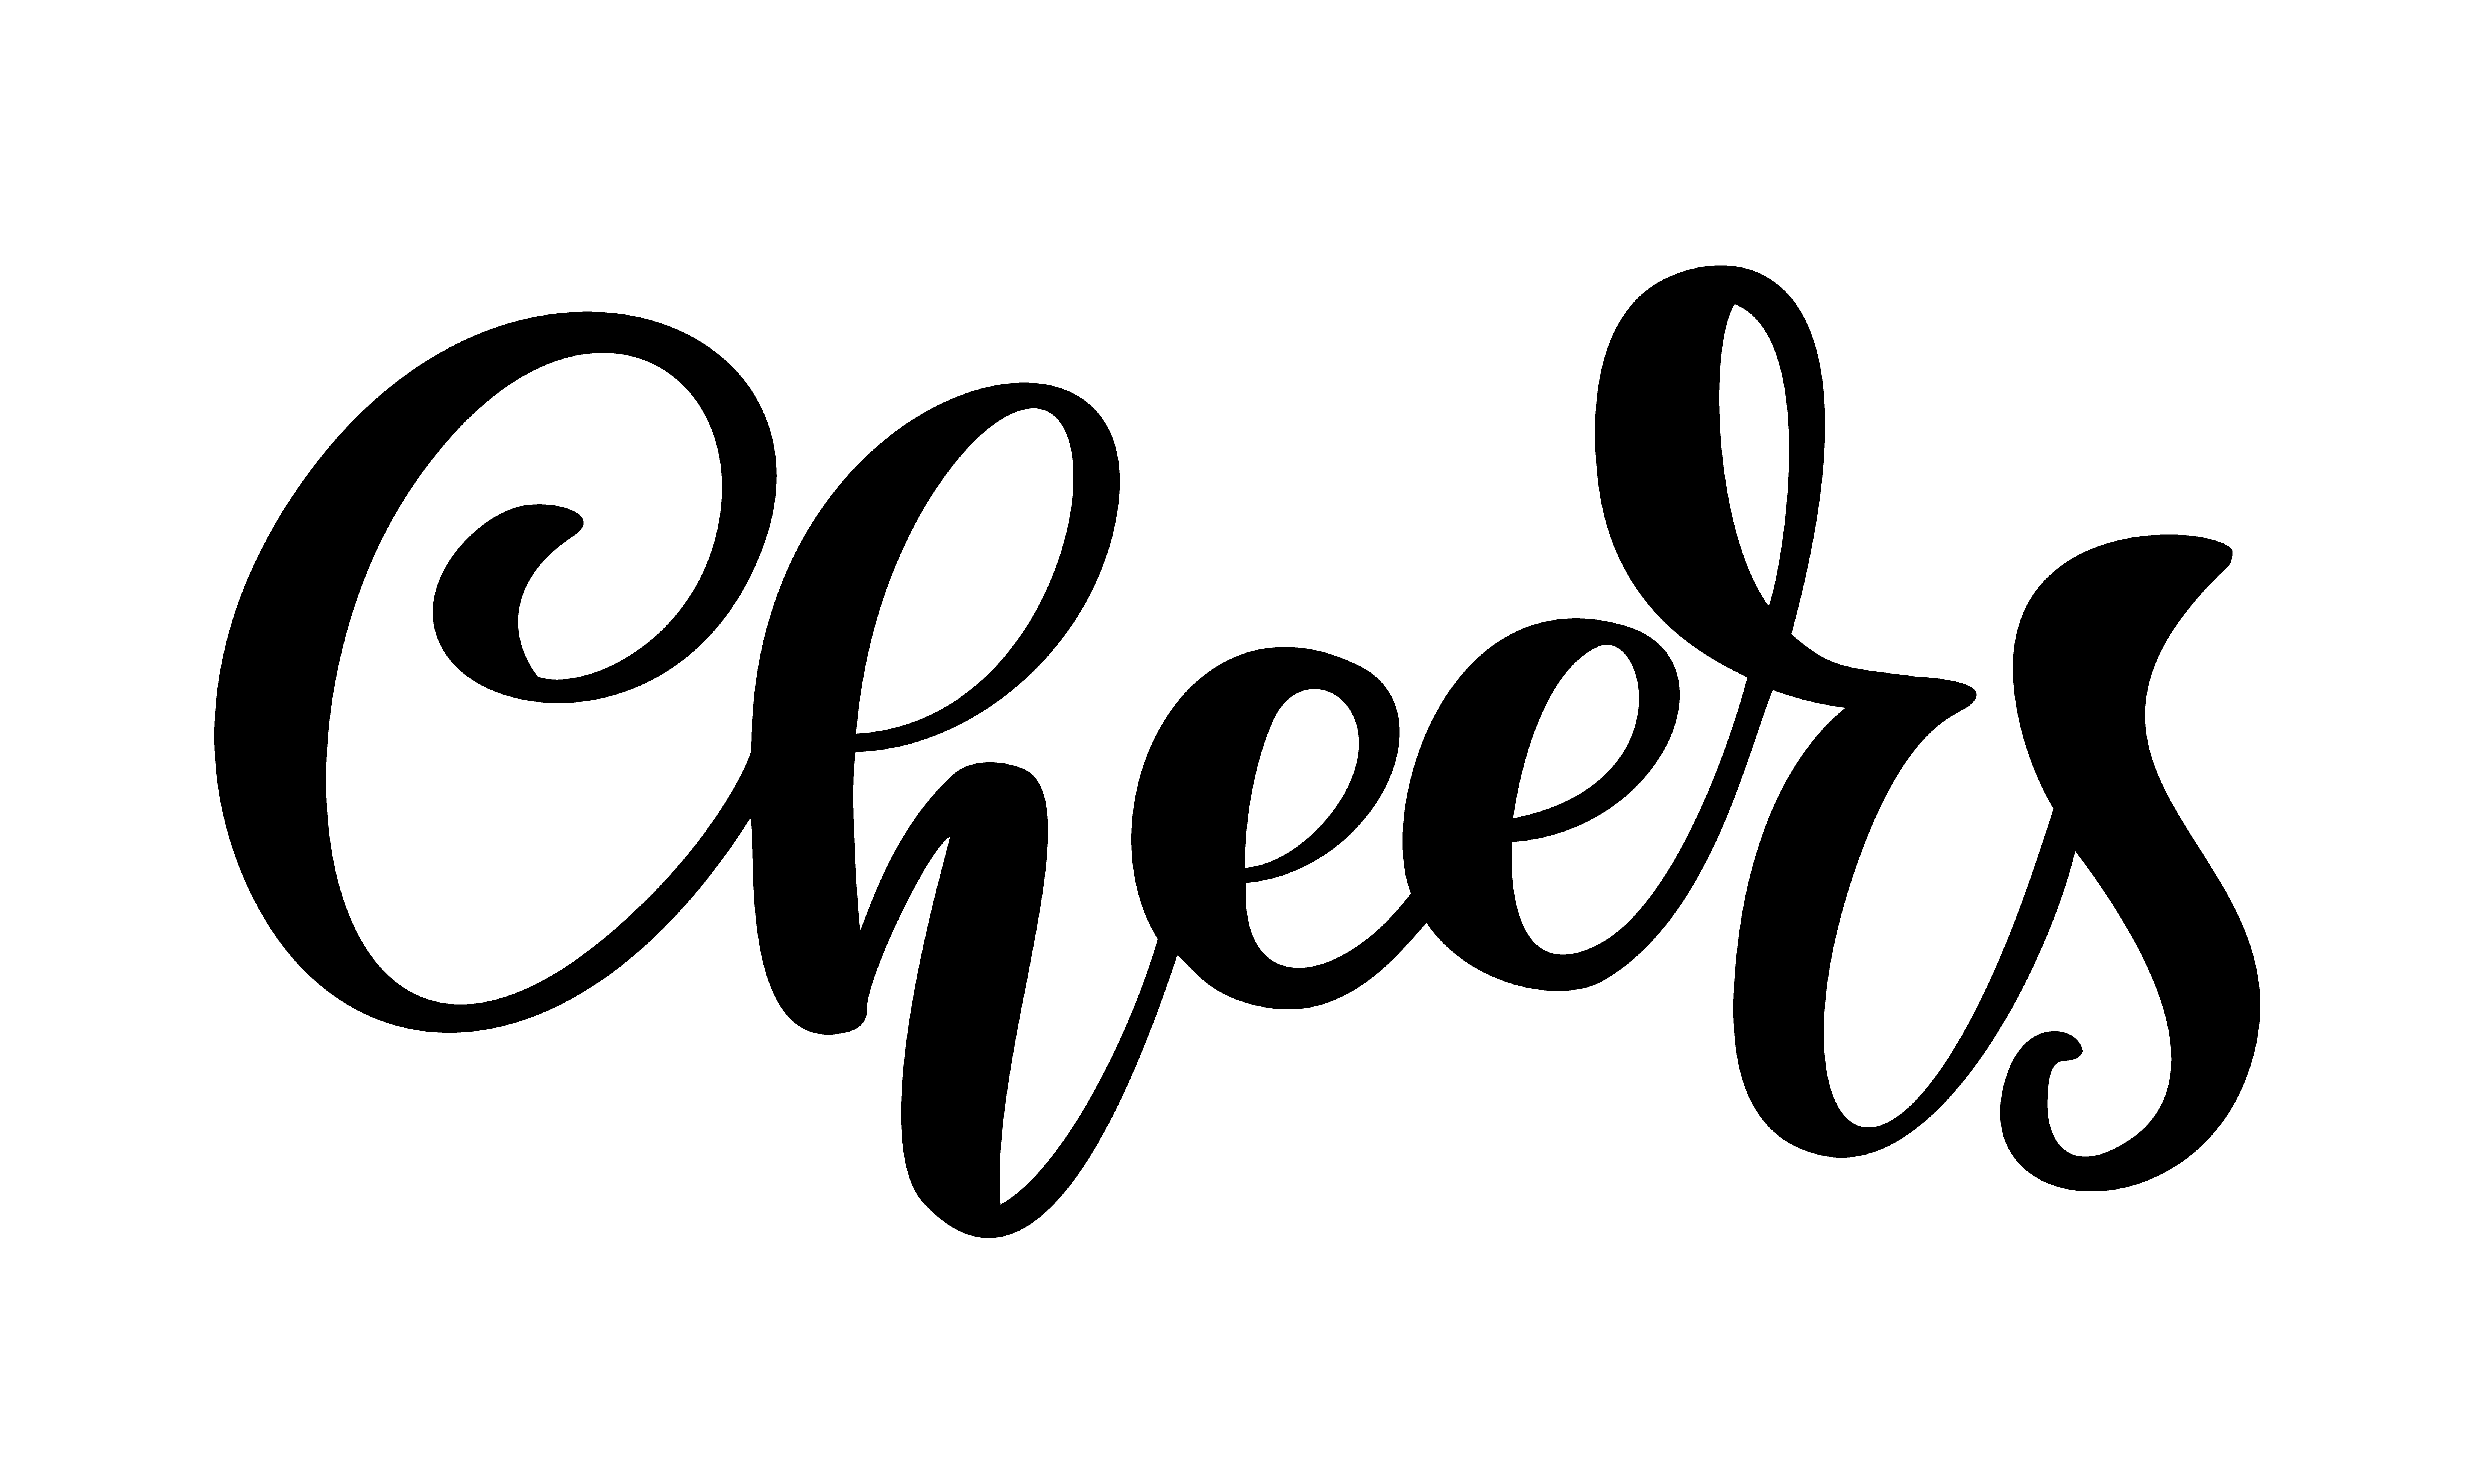 Hand Drawn Text Cheers Lettering Banner Greeting Card